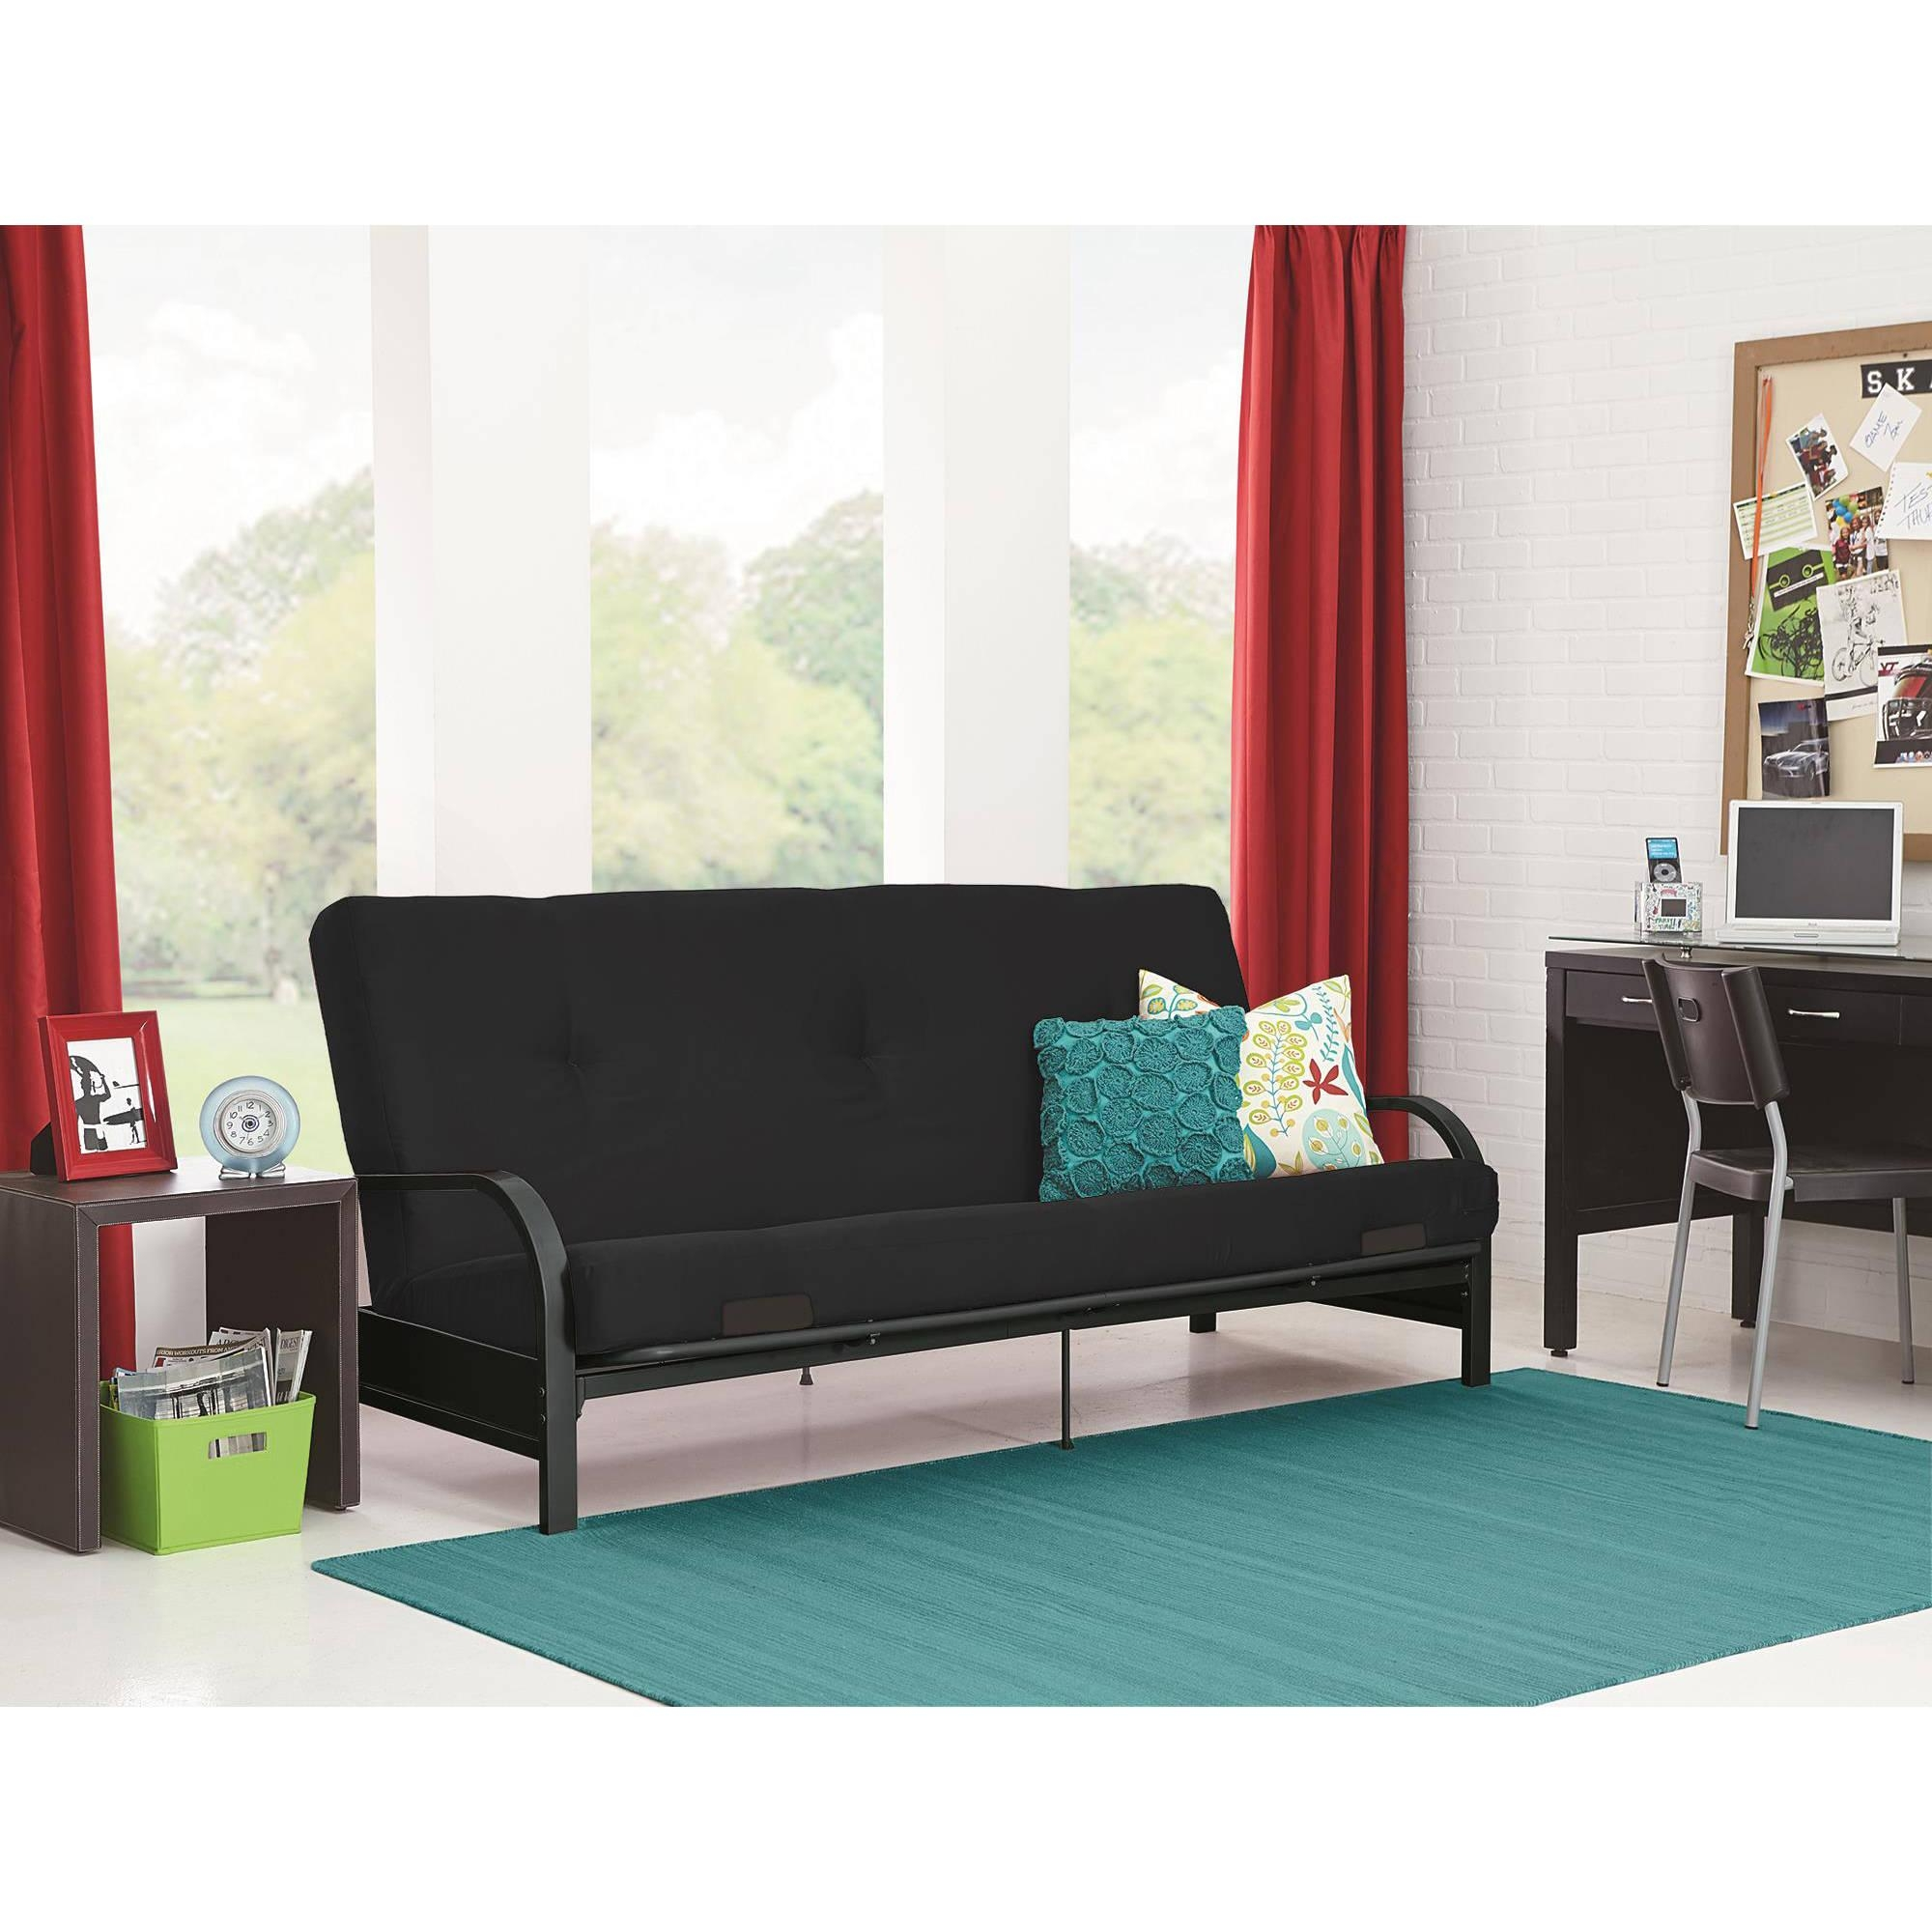 Sofa: Walmart Sofa Bed | Convertible Sofa Bed | Kmart Futons For Kmart Futon Beds (View 17 of 20)